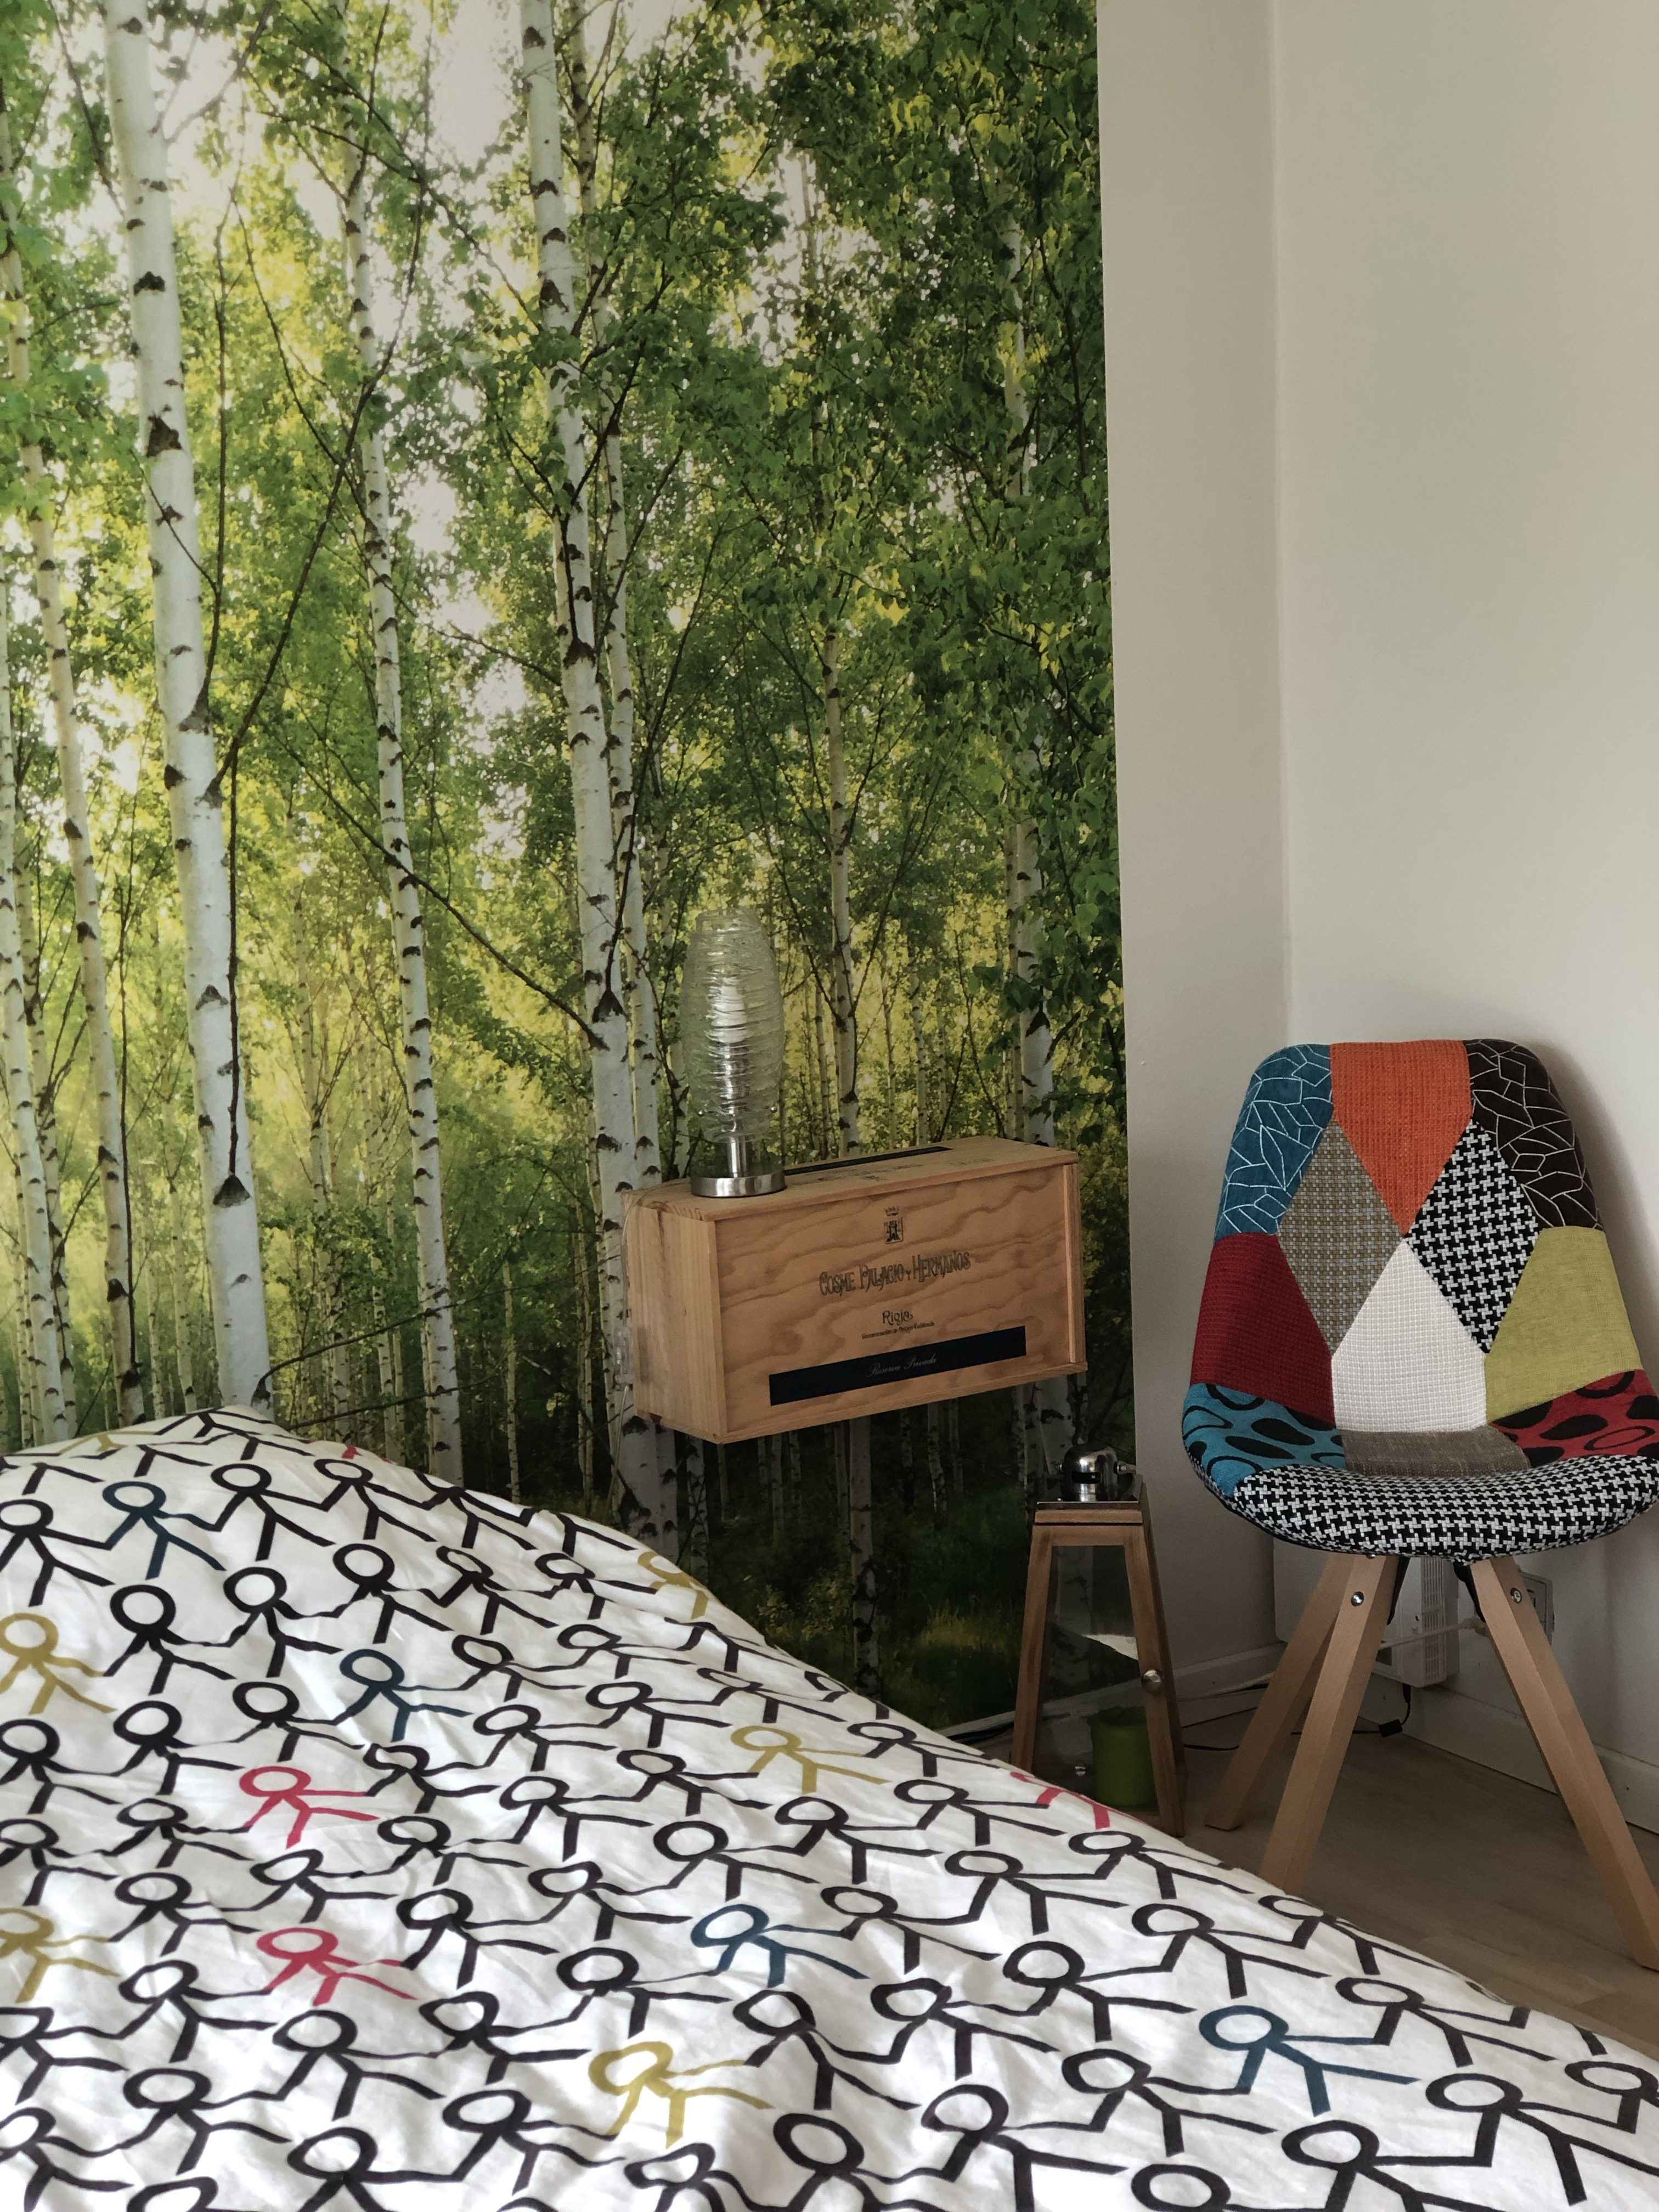 Picture of: Sovevaerelse Ceedesign